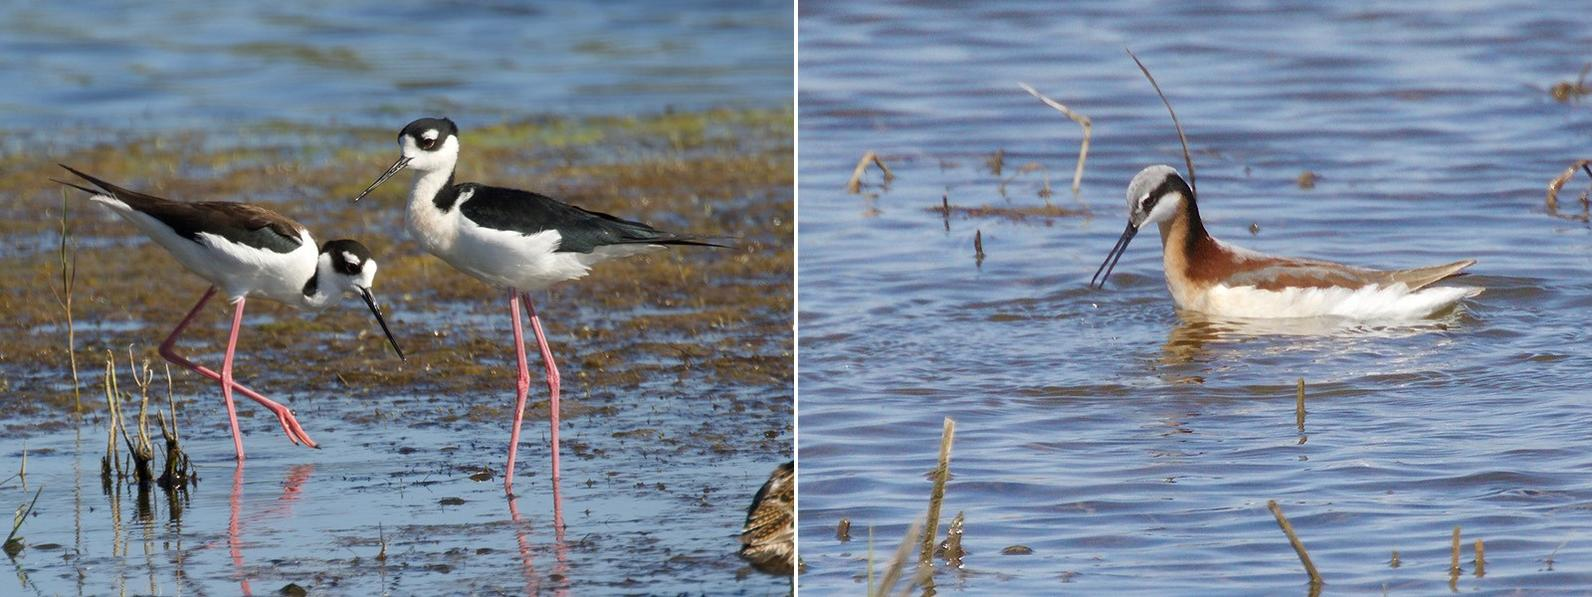 Black-necked Stilts left, Wilson's Phalarope right